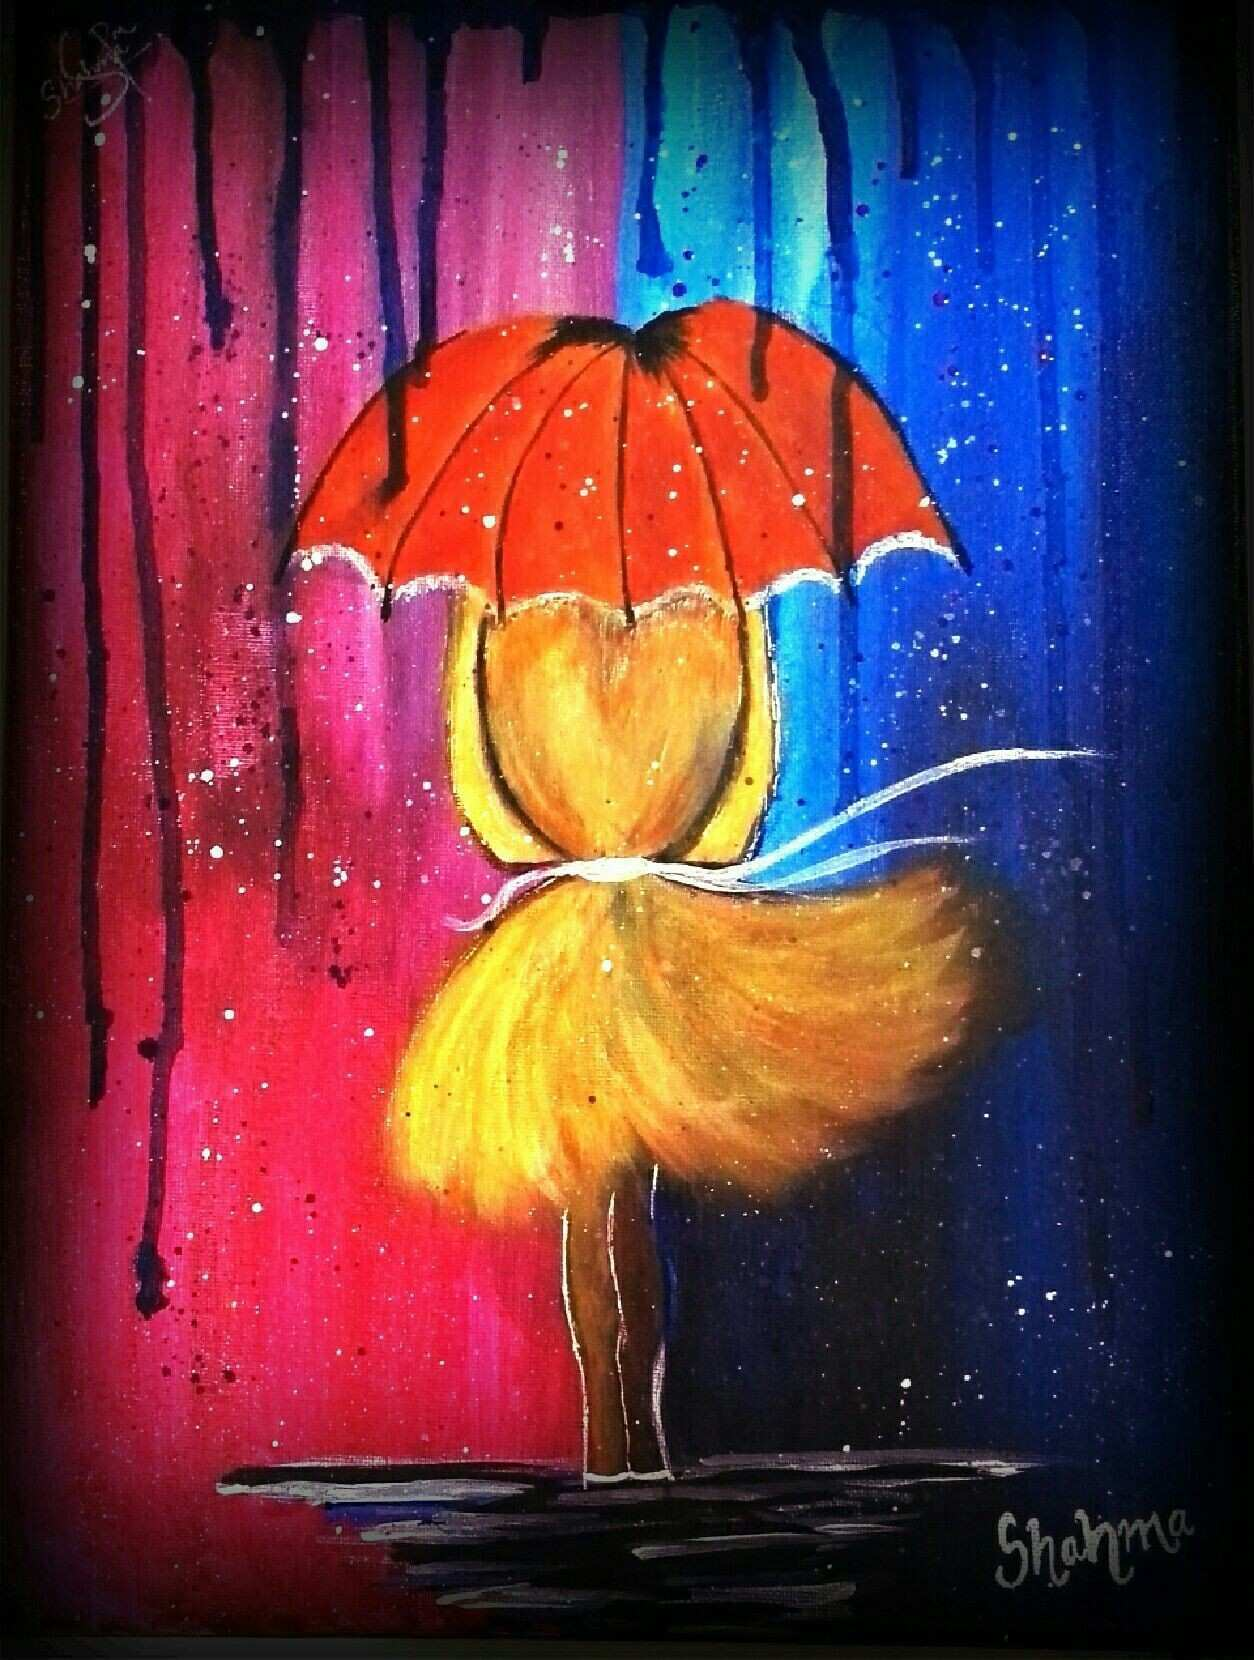 Canvas Painting Best Of Canvas Painting This is My First Painting and Has Used Arcylic